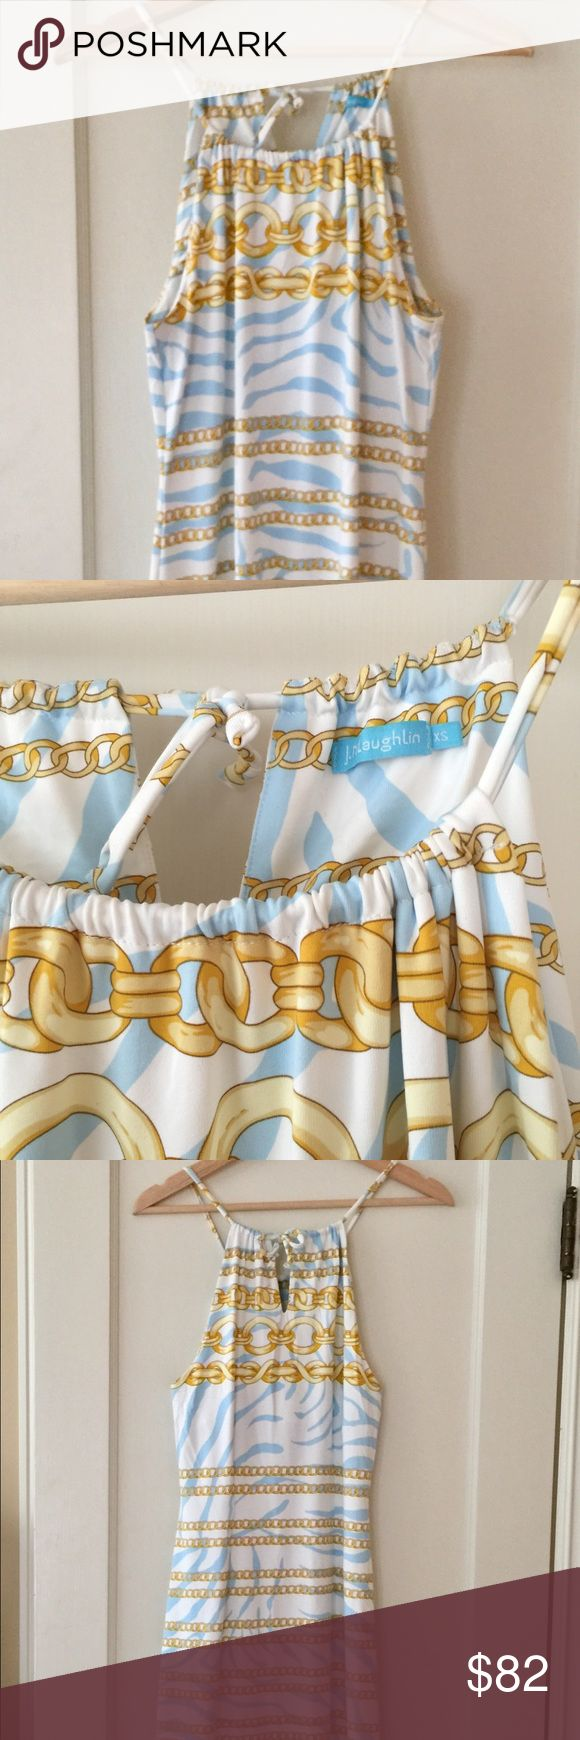 J. McLaughlin blue, white and yellow halter dress Worn once.  Darling nautical theme.  Adjustable at neck.  Very smart looking! J. McLaughlin Dresses